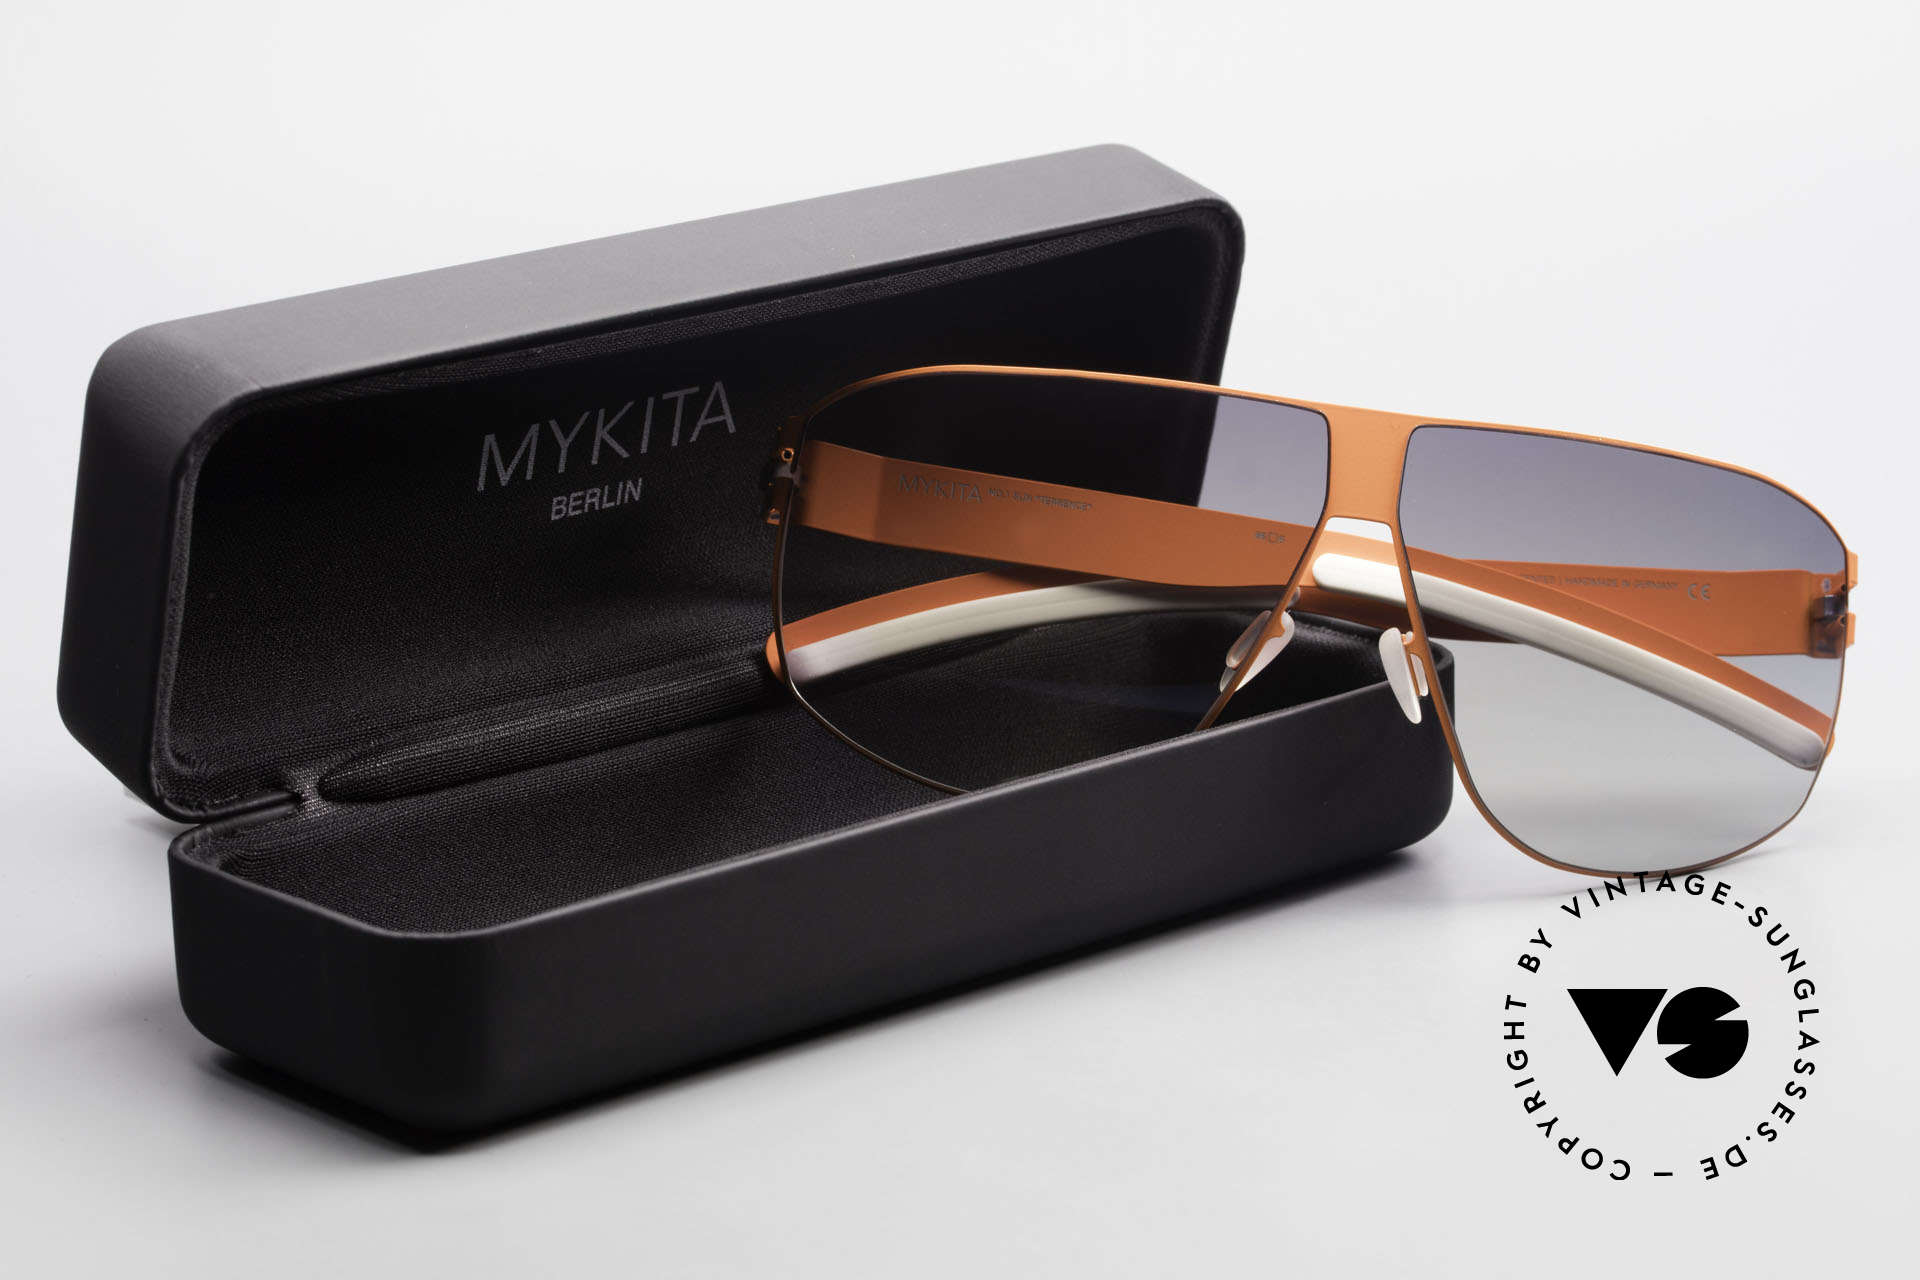 Mykita Terrence Mykita Shades Neonorange, Size: large, Made for Men